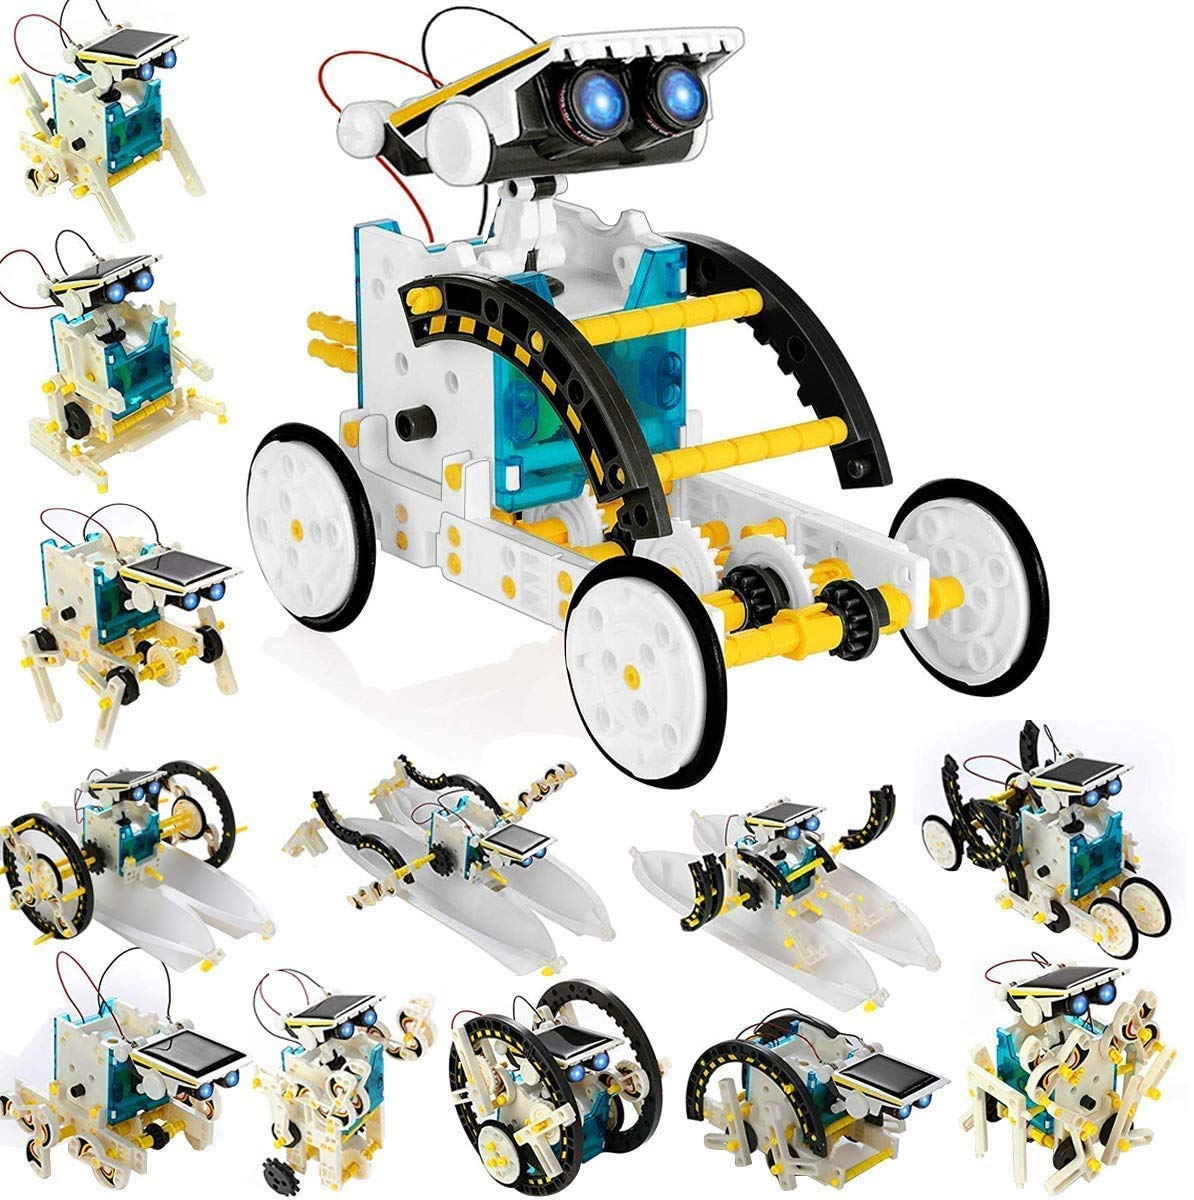 RVold 13-in-1 Educational Solar Robotic Kit